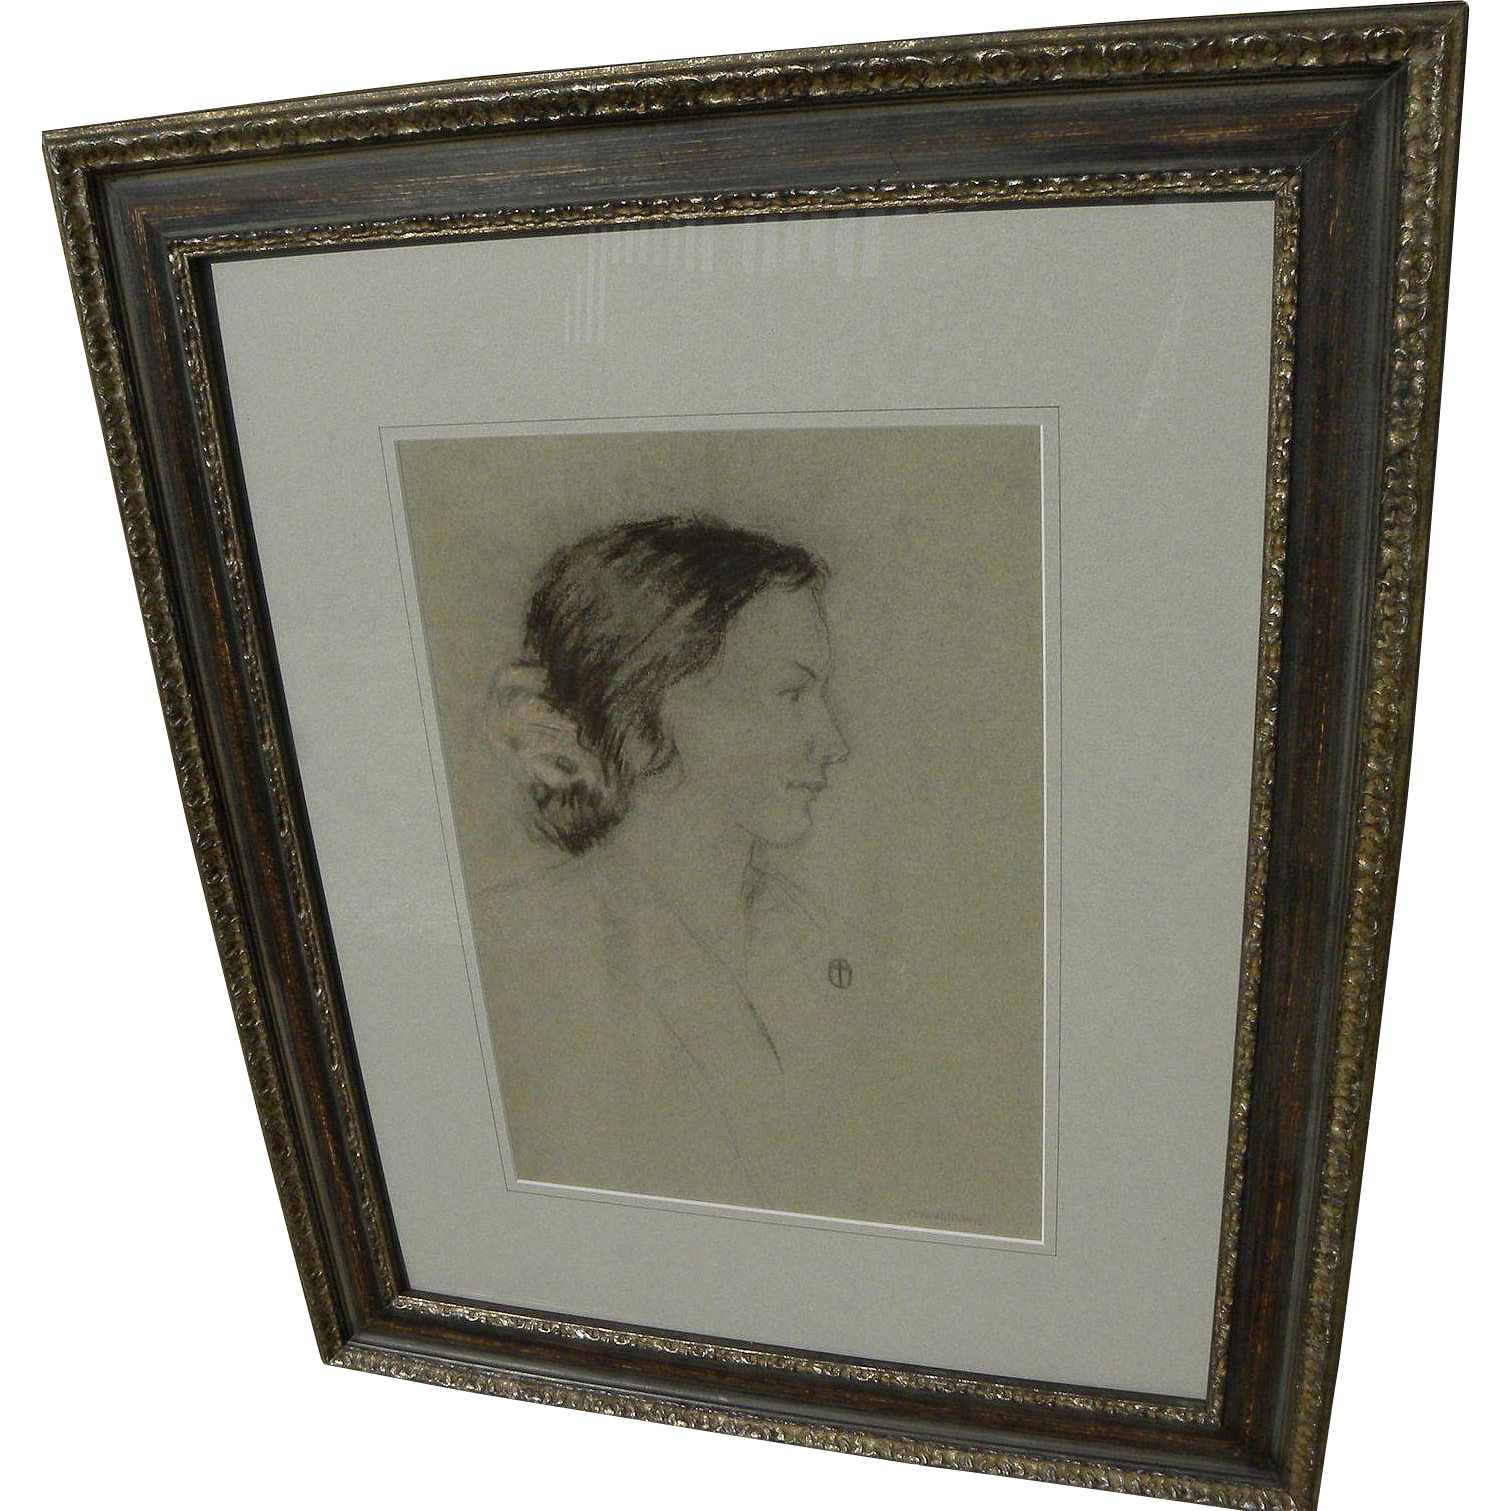 OTIS ALFRED WILLIAMS (1888-1960) charcoal and pastel portrait drawing by noted California Scene artist